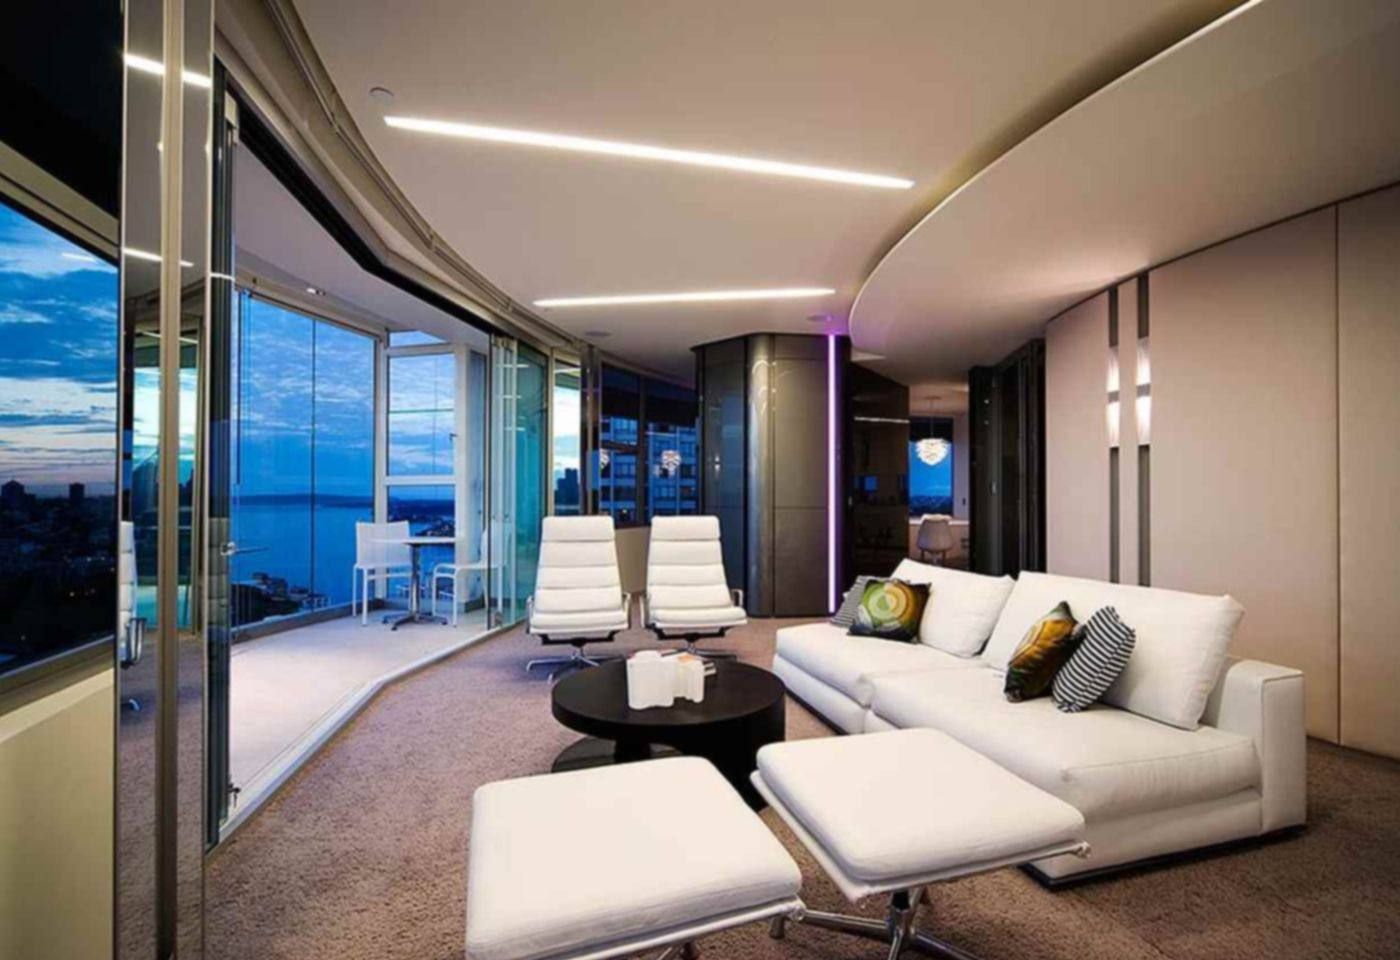 Luxury apartment interior design ideas if youre moving into an apartment from a bigger house it is going to not be possible to take all your furniture